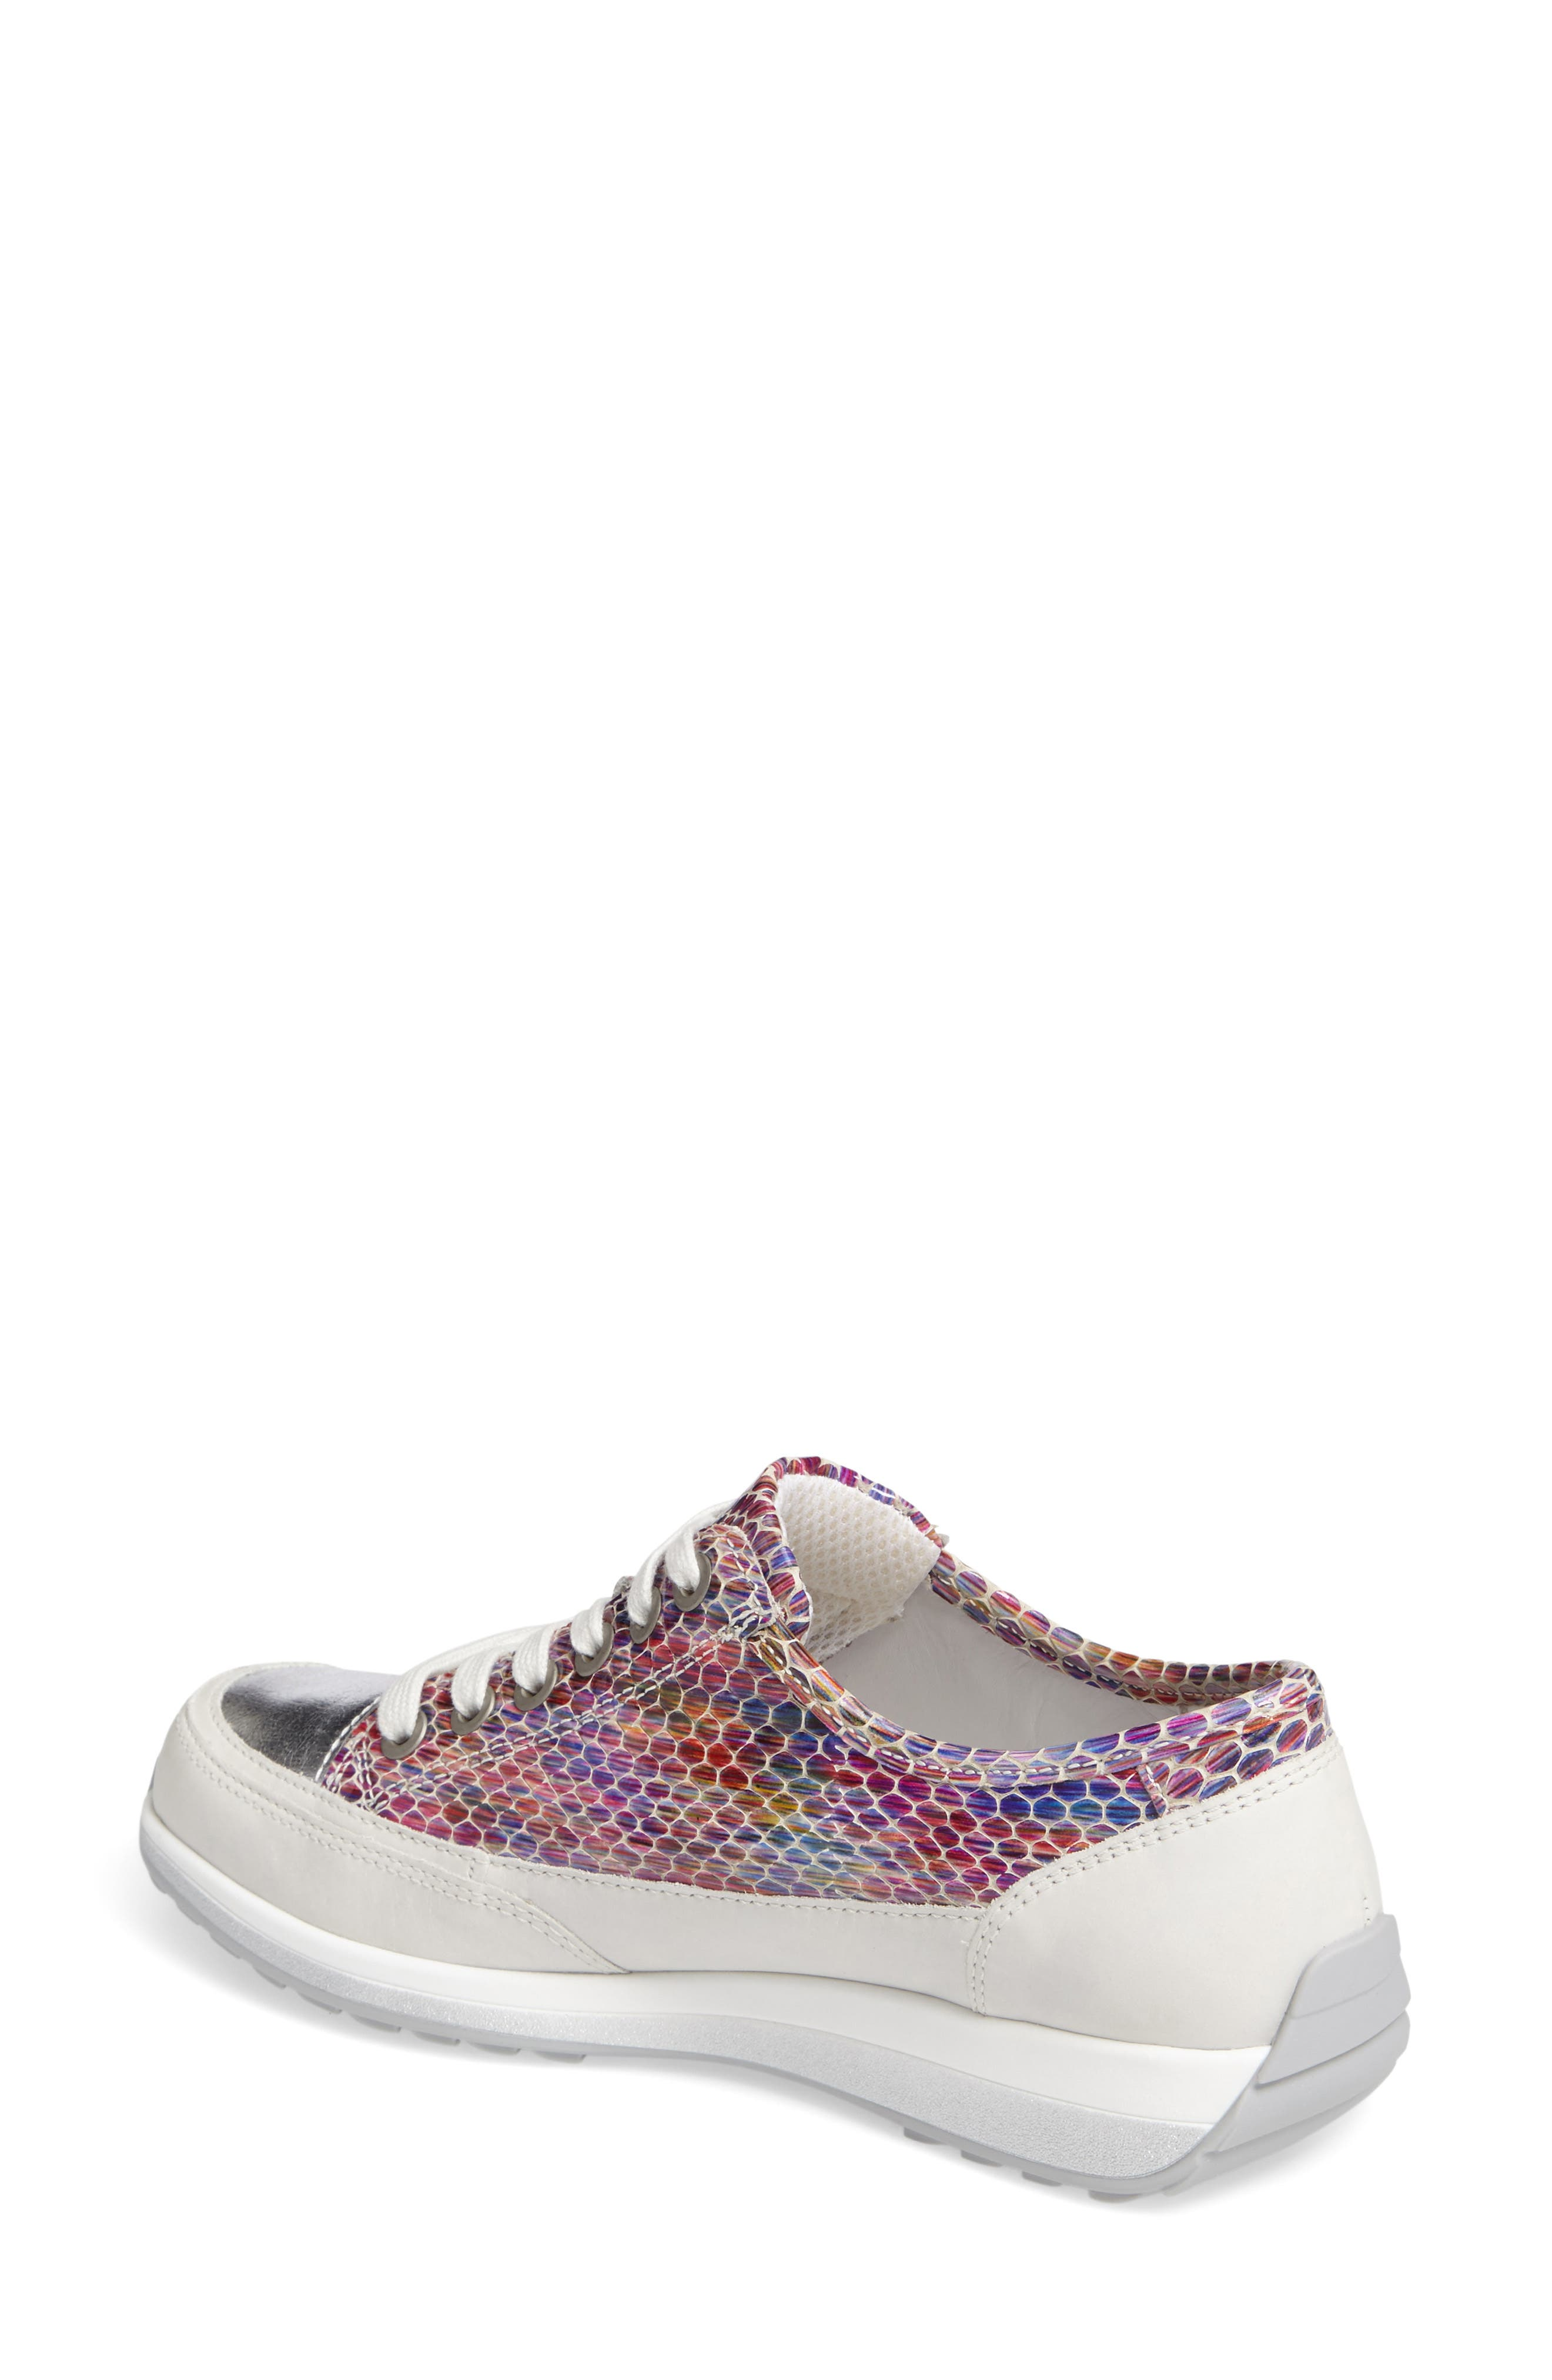 Hermione Sneaker,                             Alternate thumbnail 2, color,                             WHITE MULTI LEATHER